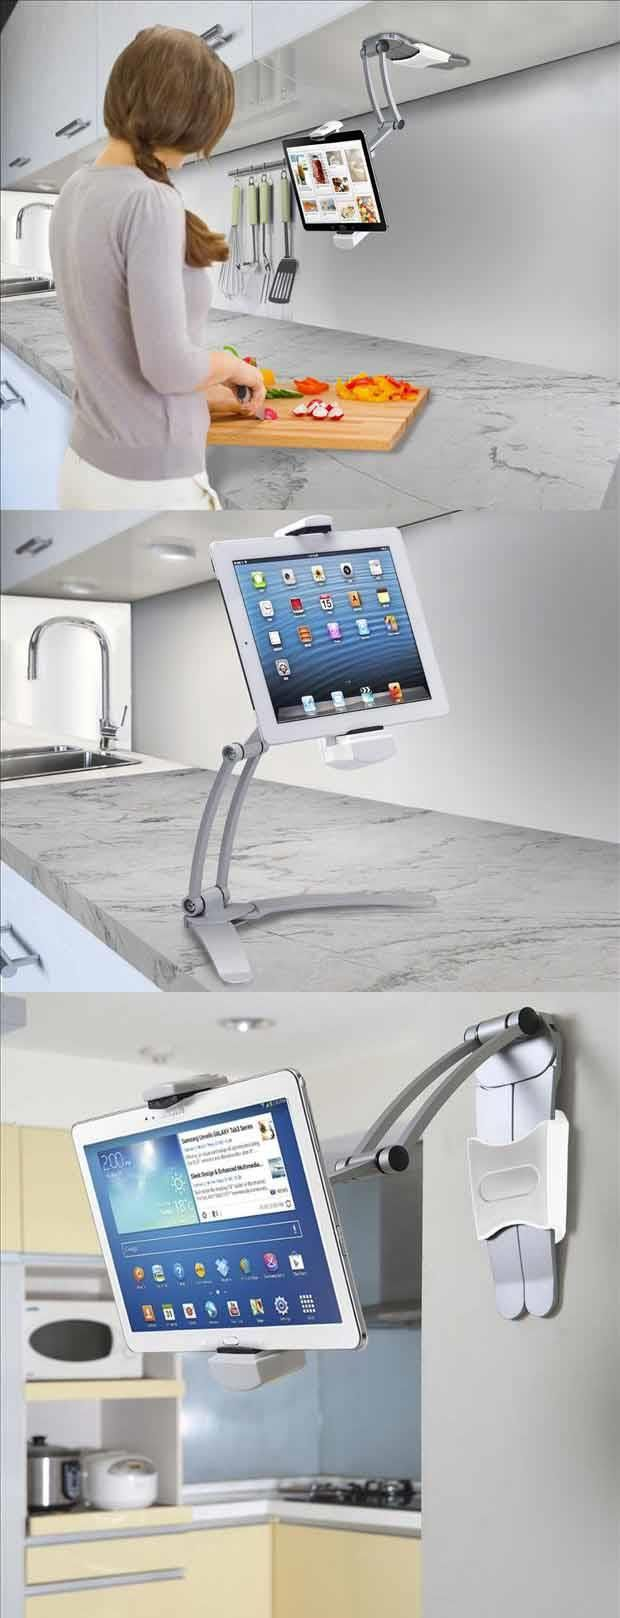 8 Great Design Ideas for Your Kitchen | Kitchen gadgets, Amazon and ...